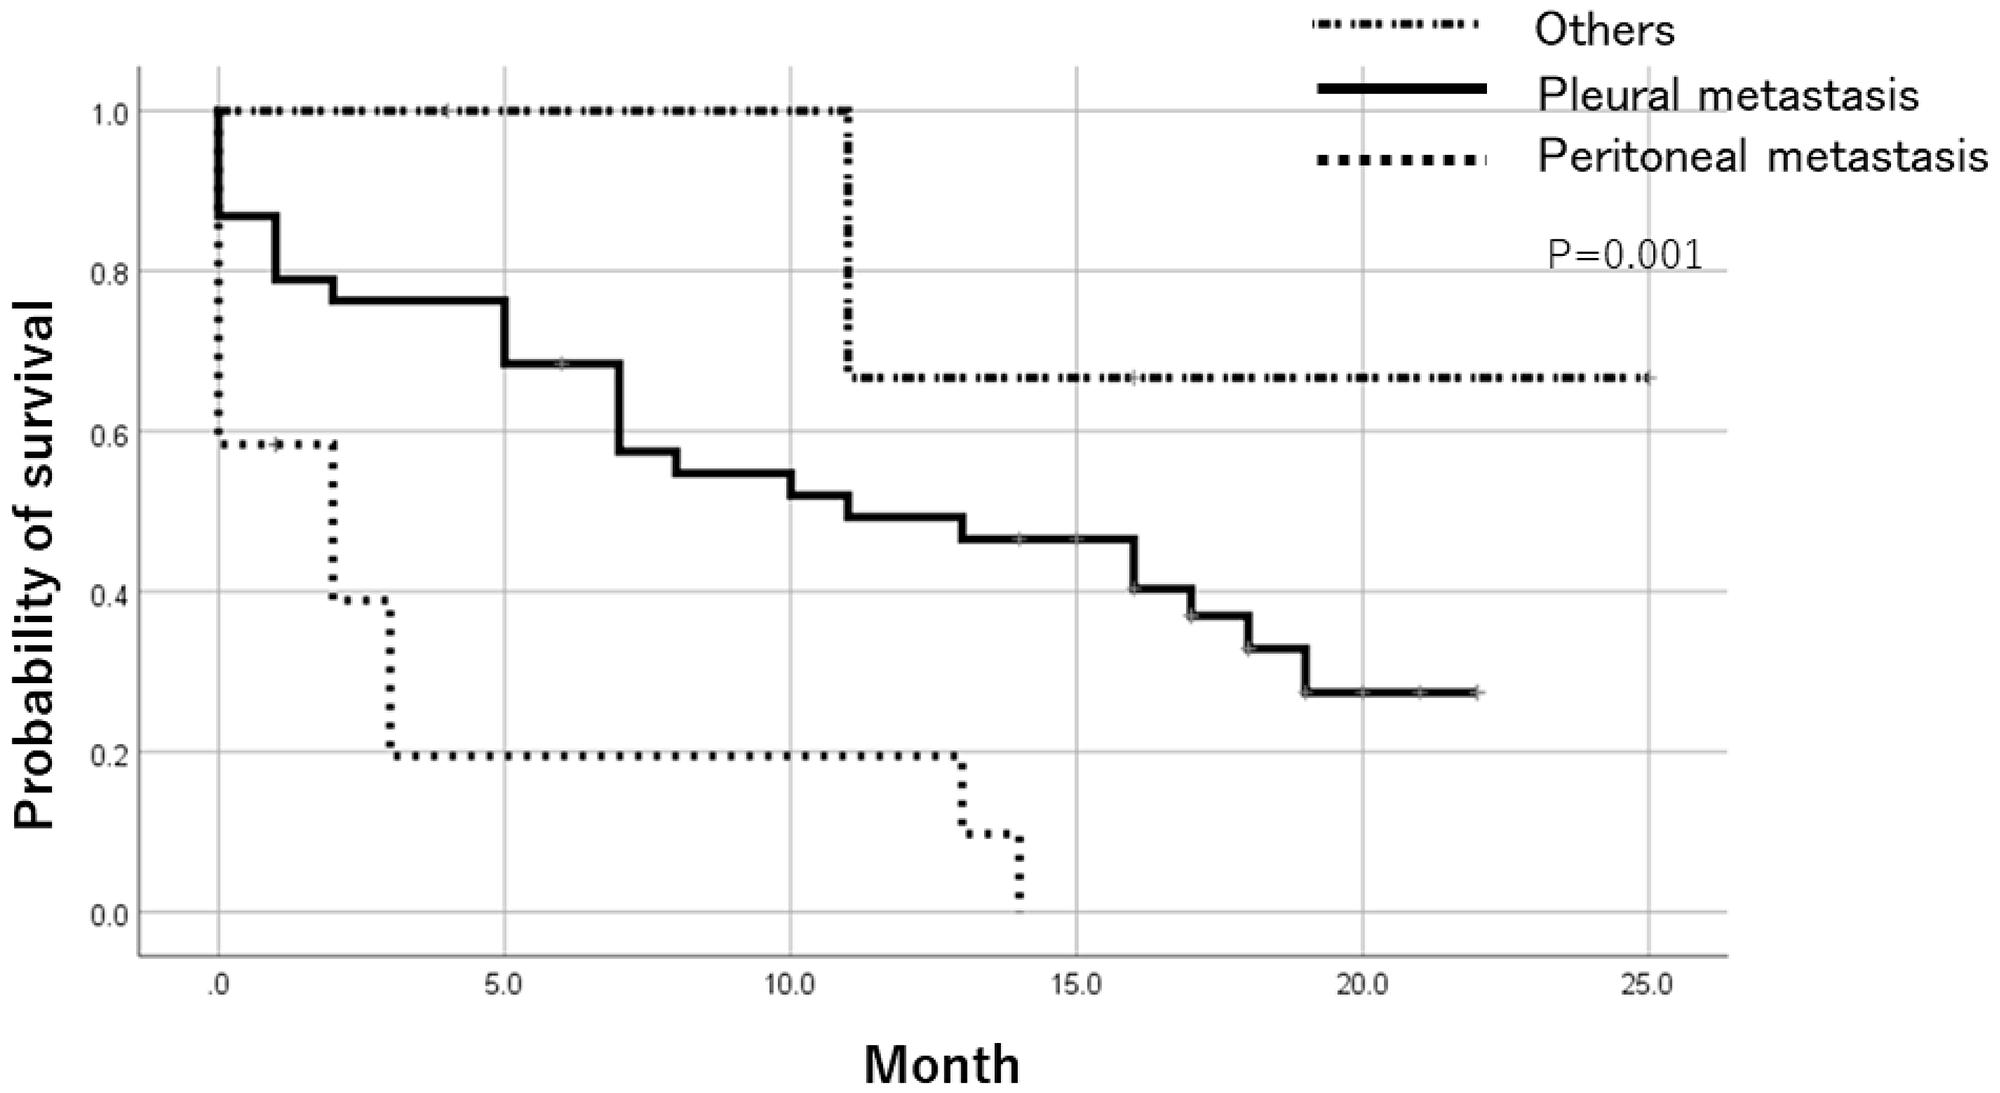 Prognosis after trial registration by metastatic lesion.